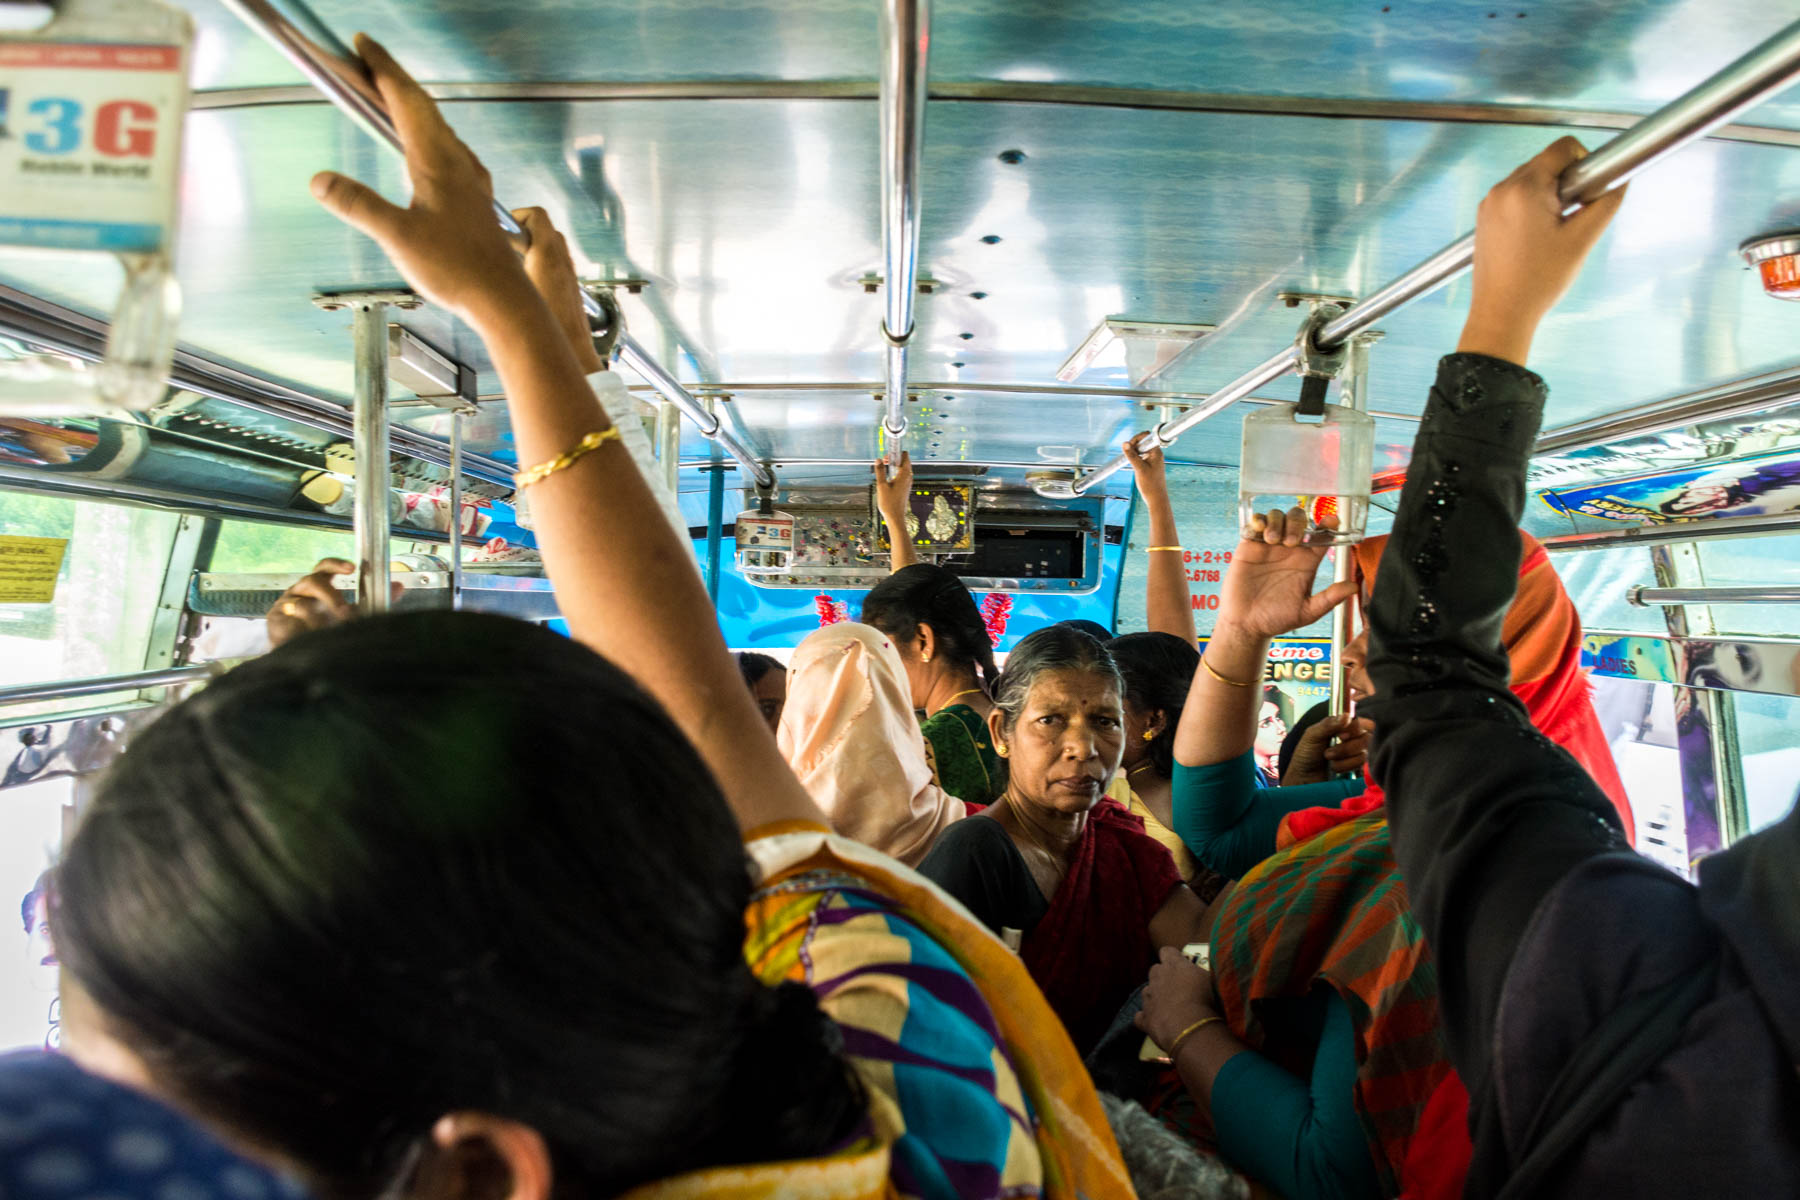 A crowded public bus in Kalpetta, India - Lost With Purpose